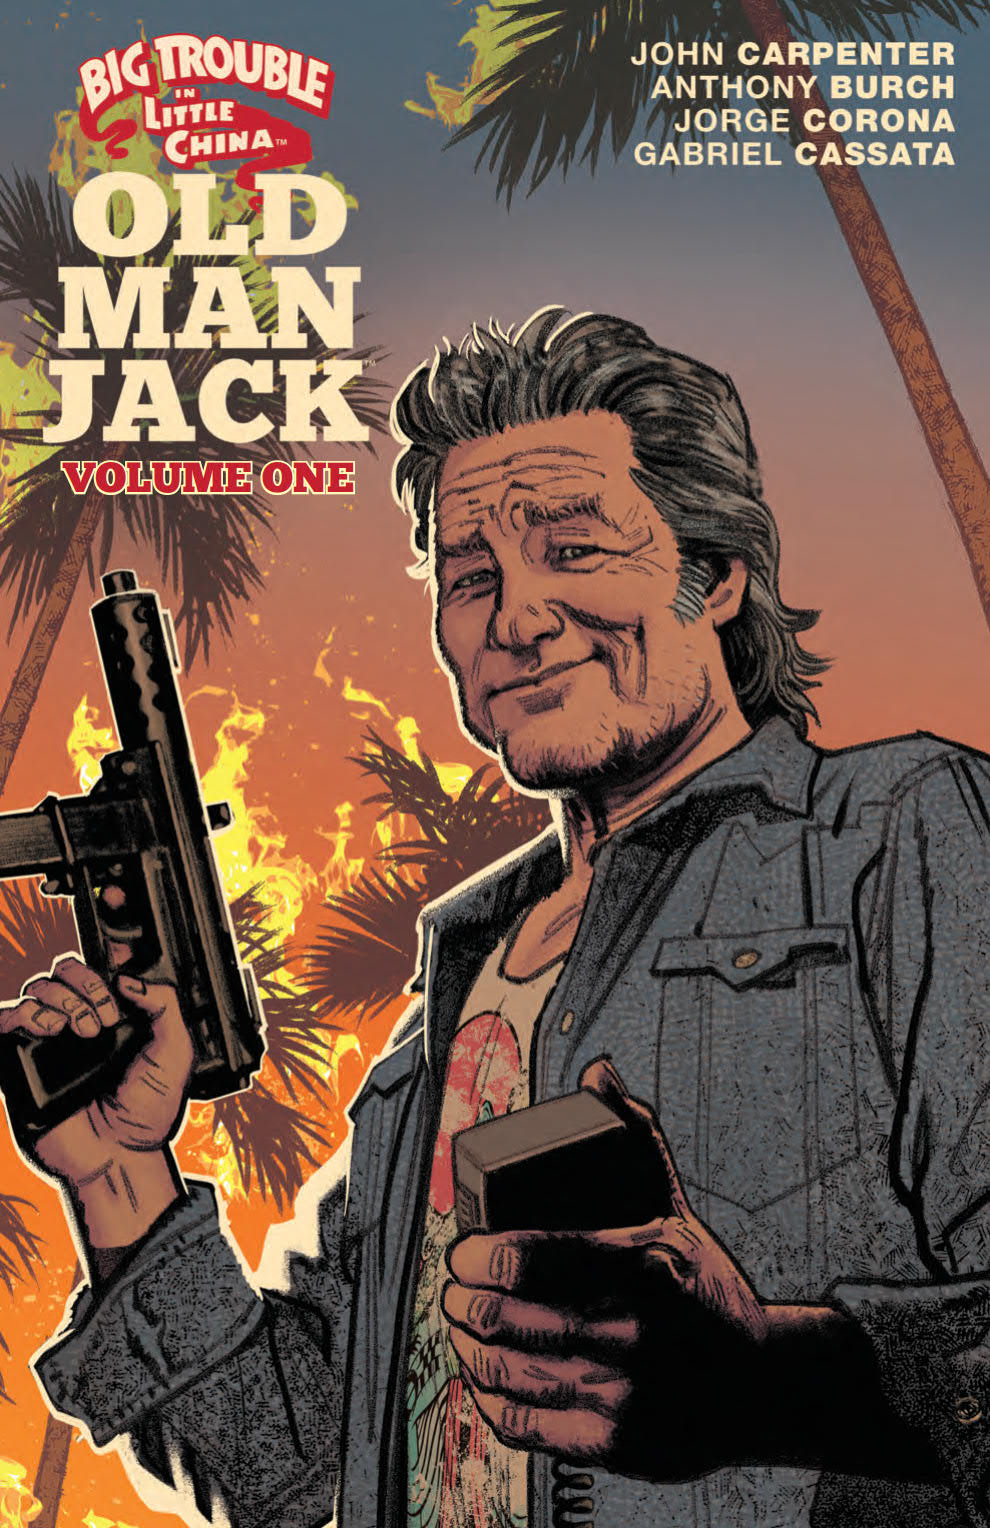 BIG TROUBLE IN LITTLE CHINA OLD MAN JACK TP VOL 01